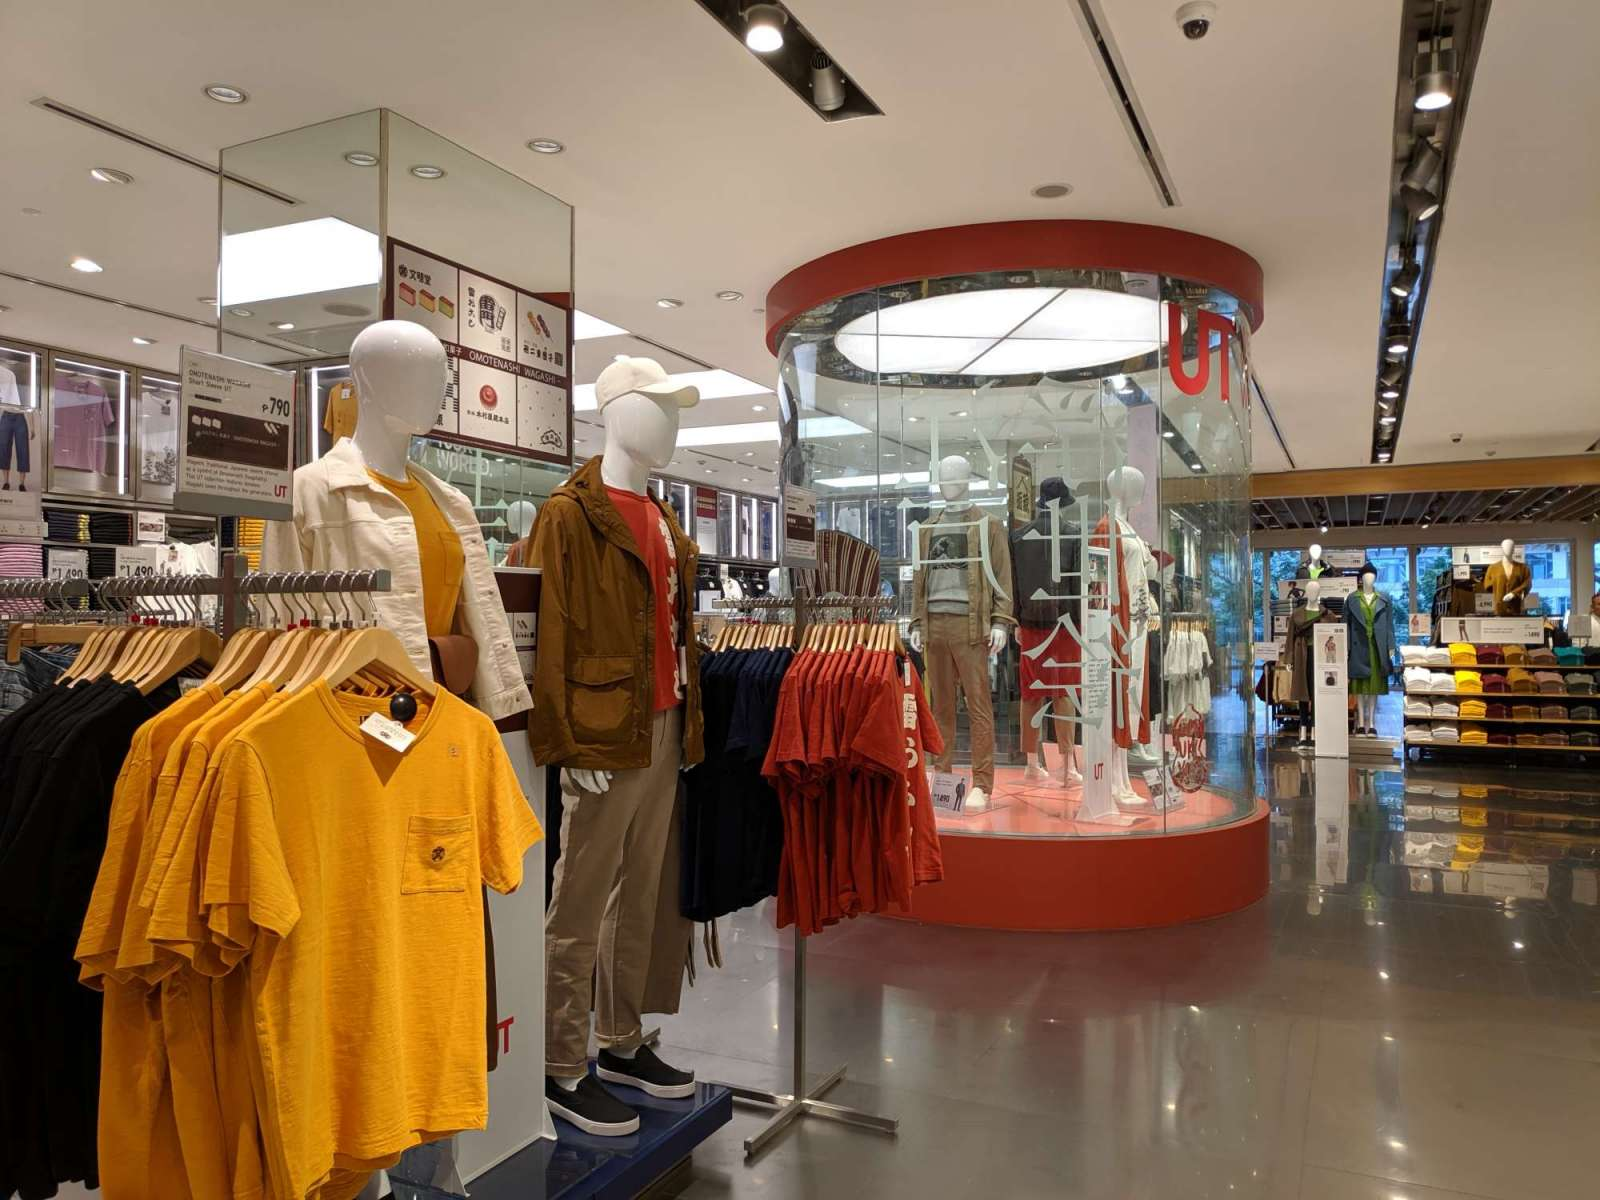 UNIQLO Manila Global Flagship Store, Glorietta 5, Makati